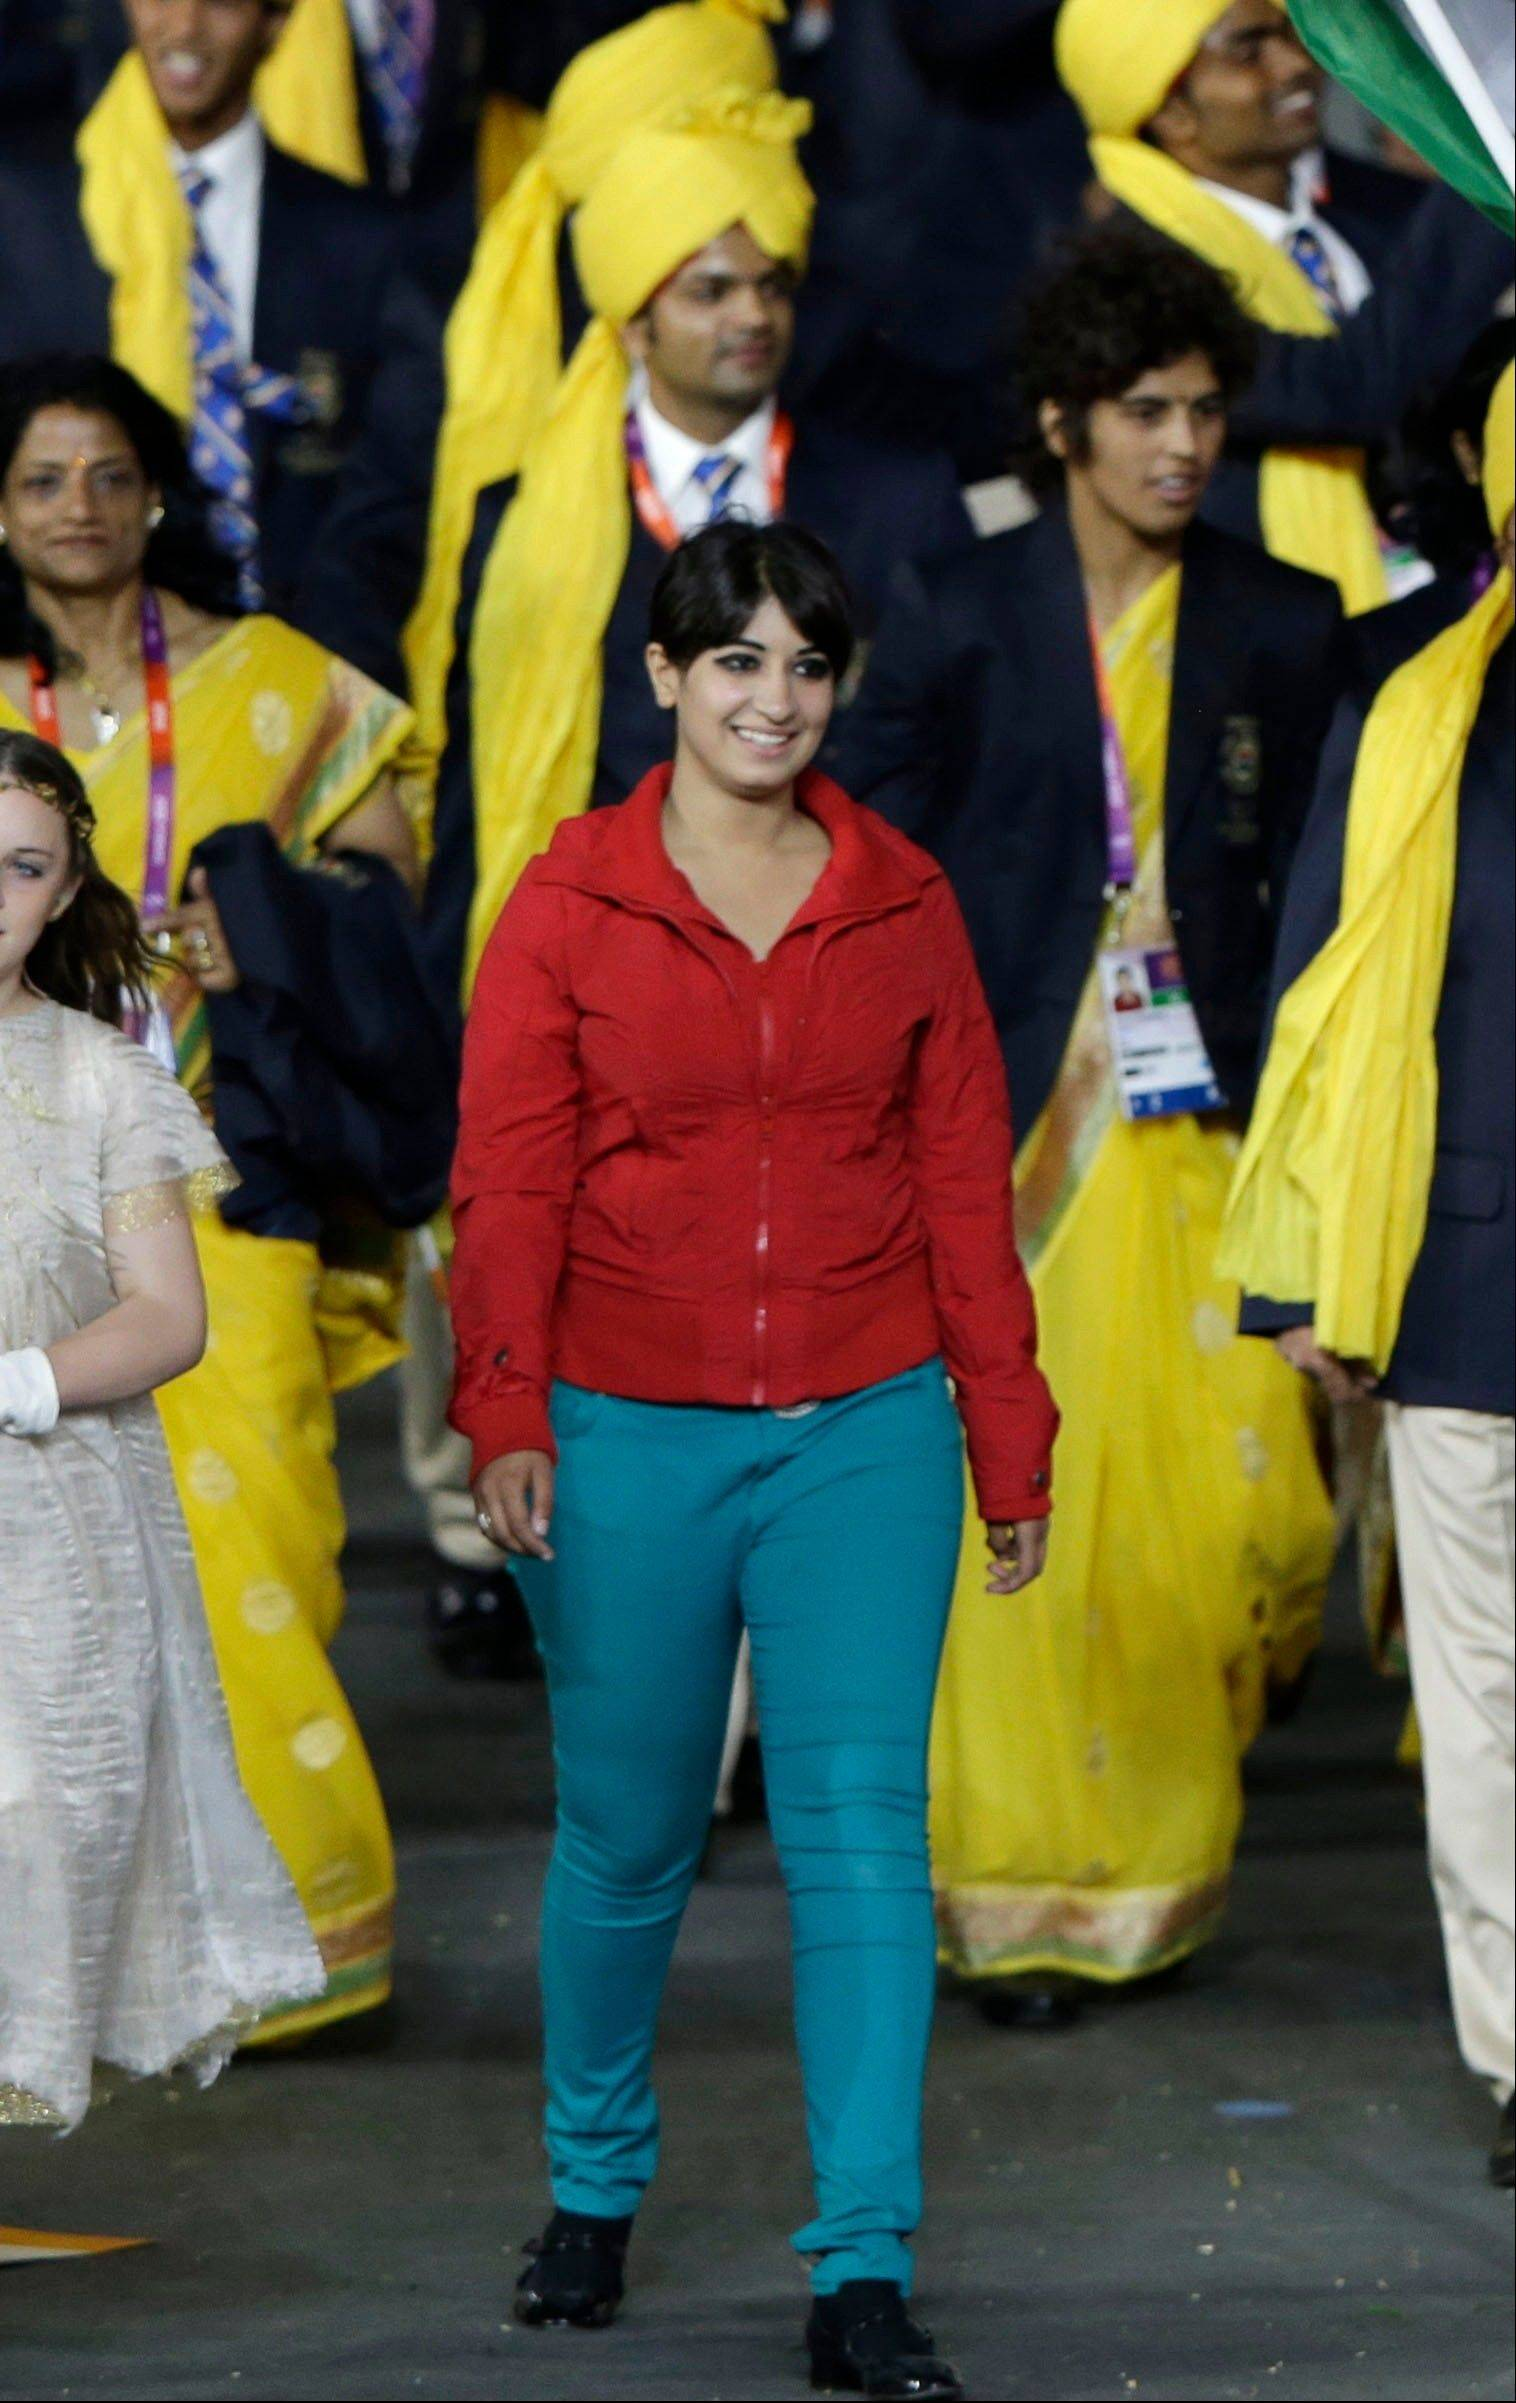 The Friday July 27, 2012 photo shows a cast member walking with the Indian team during the Opening Ceremony at the 2012 Summer Olympics, Friday, July 27, 2012, in London. The woman stood out during India's walk through Olympic Stadium at the opening ceremony. That's because she wasn't supposed to be there. Friday night's party crasher was not wearing the yellow and white dress that every other Indian woman was wearing in the group, yet still managed to situate herself next to flag bearer Sushil Kumar at the front of the line as they walked around the stadium.